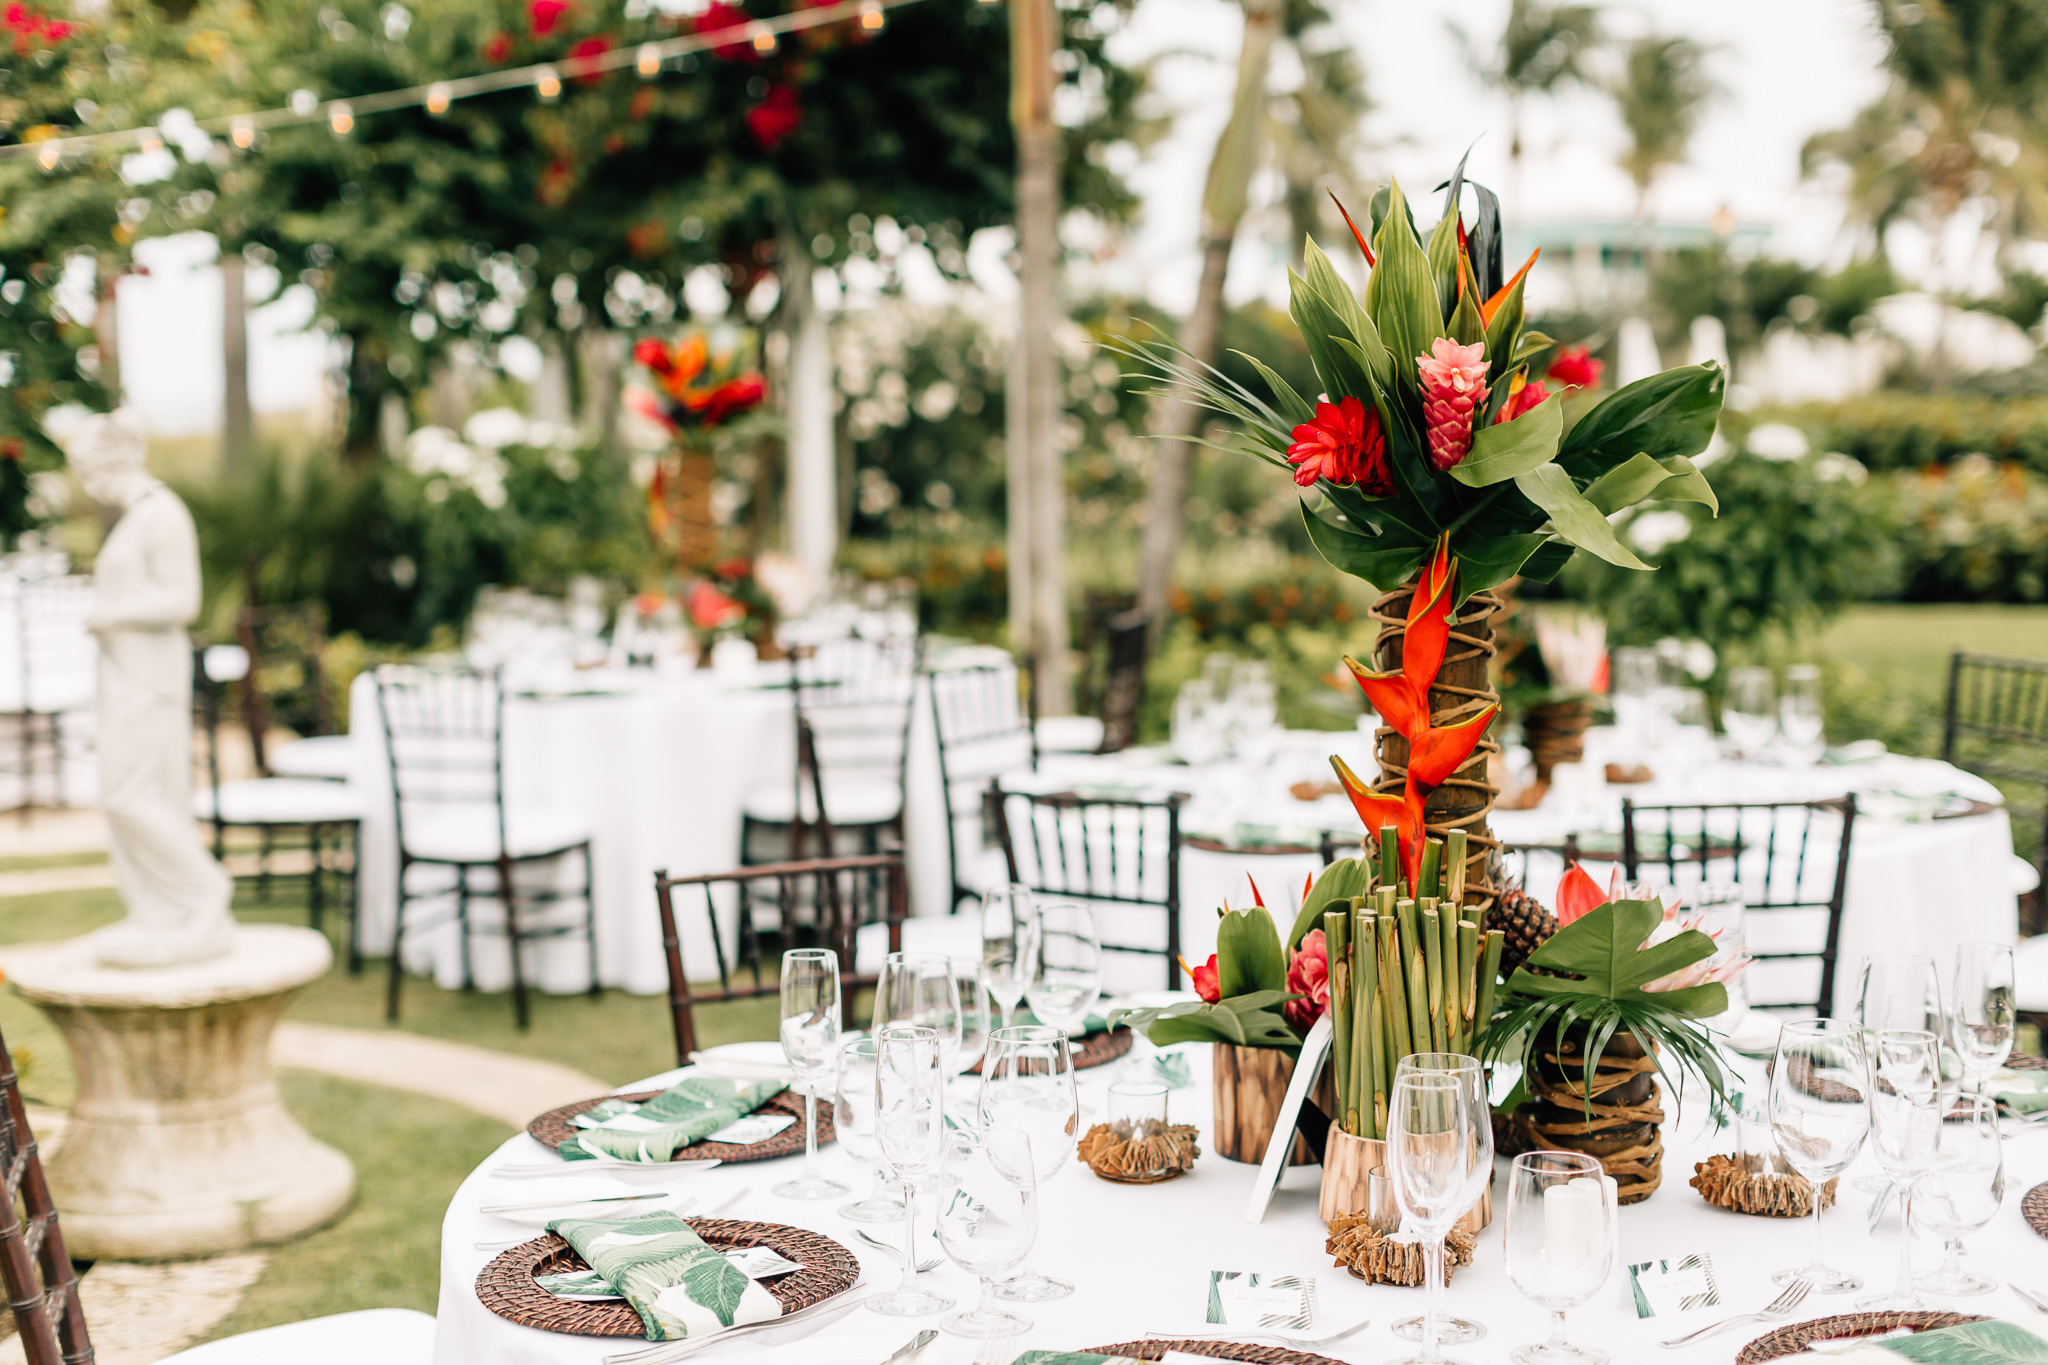 A tropical reception centerpiece featuring bursts of red wedding florals and touches of deep green palm leaves.